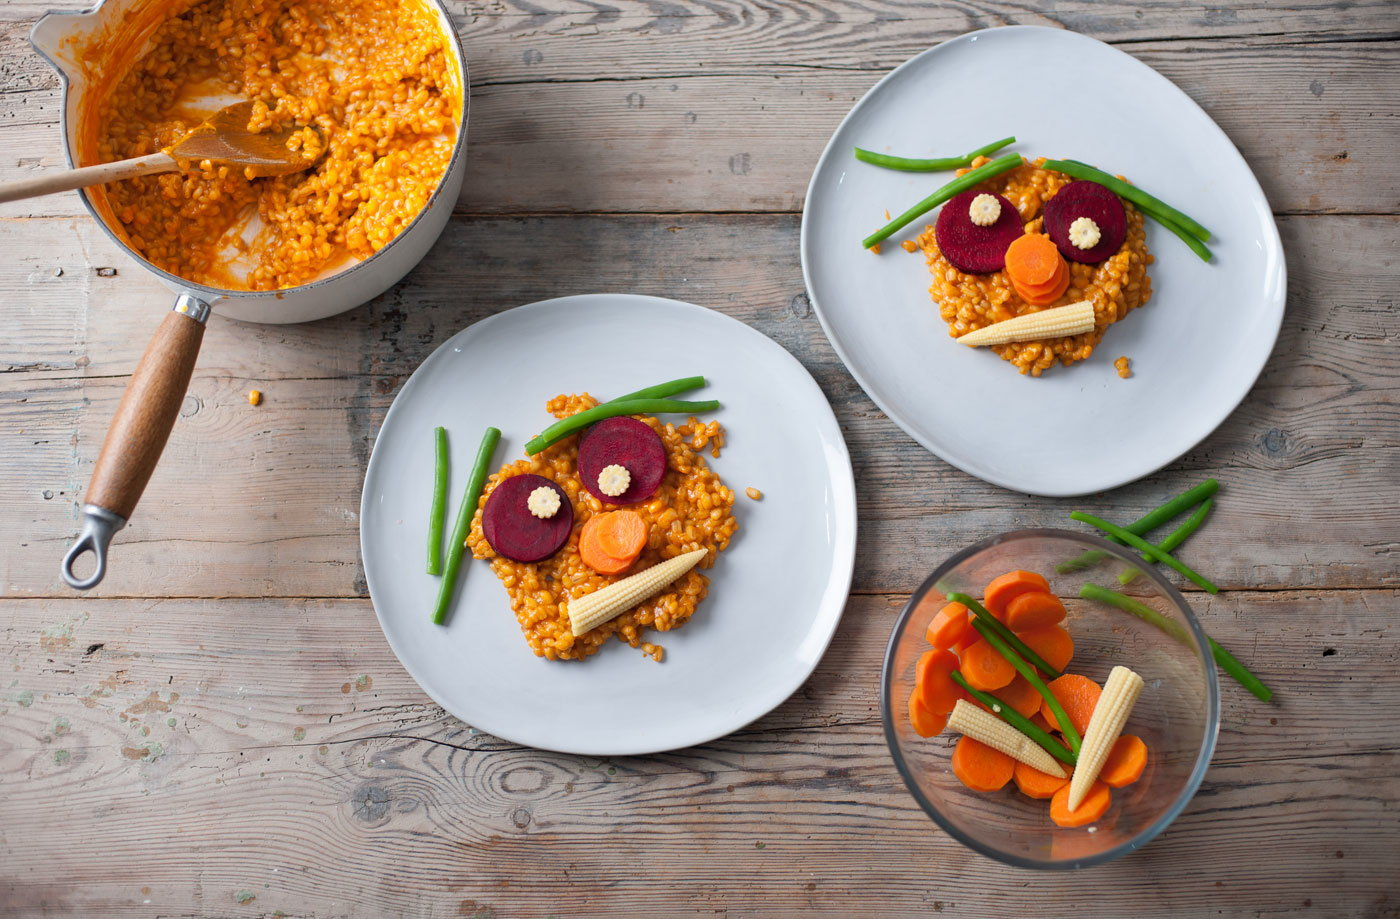 Recipes for kids meal ideas for kids tesco real food andrew mackenzies tomato and vegetable risotto faces forumfinder